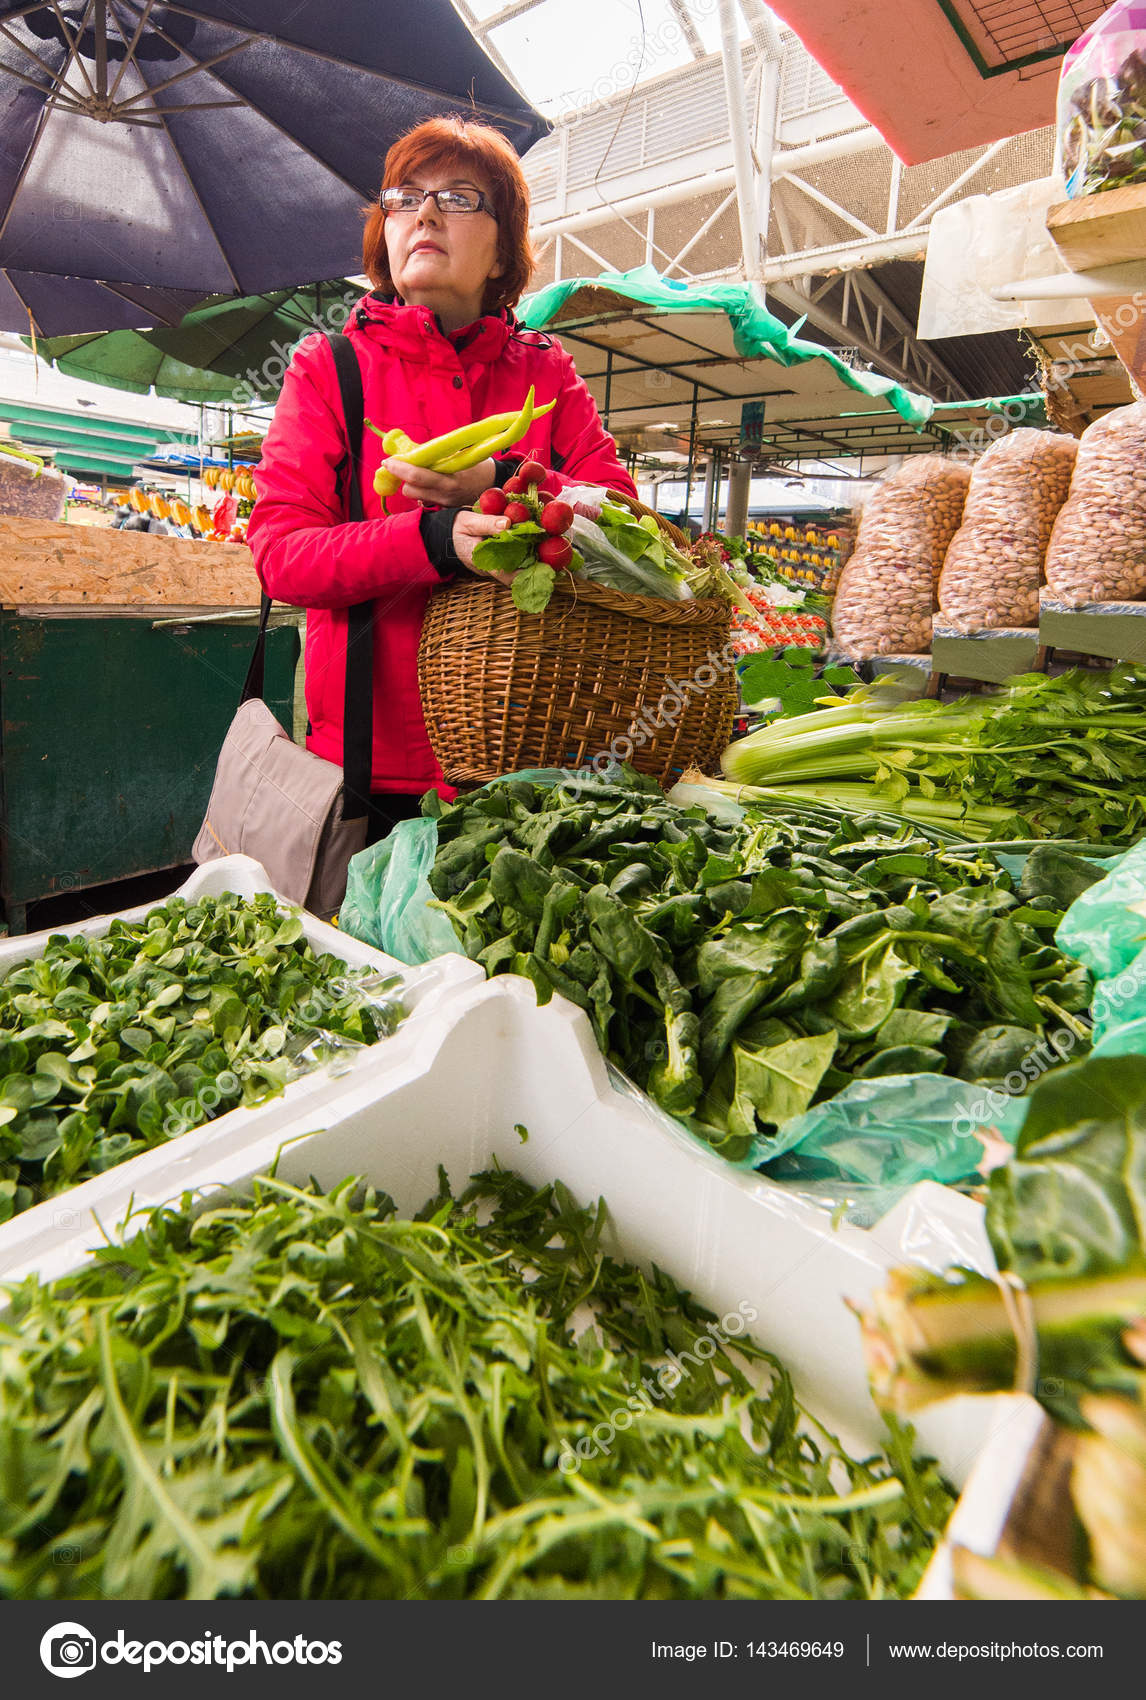 Woman buying lettuce at market place